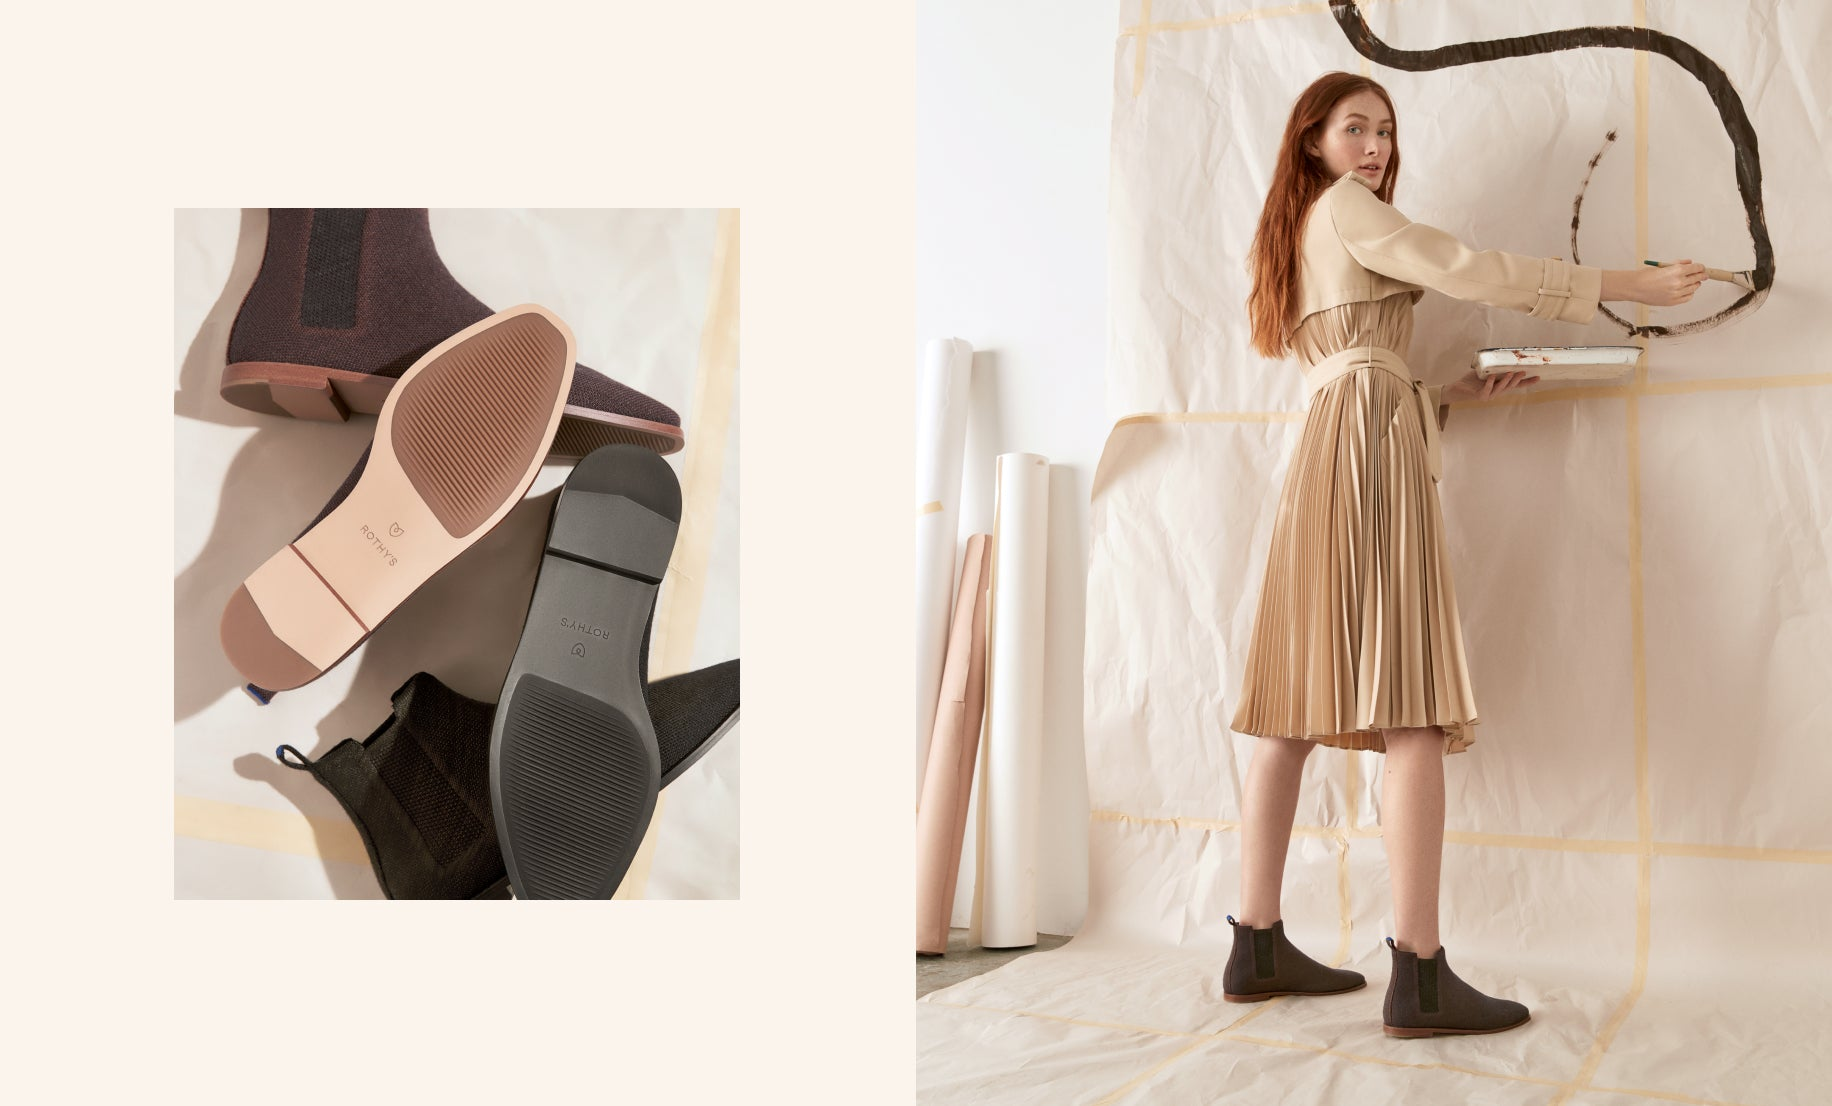 On the left, two pairs of The Merino Ankle Boot in Onyx Black and Cocoa Brown lying on the floor. On the right, model wearing The Merino Ankle Boot in Cocoa Brown and painting on a cream canvas.